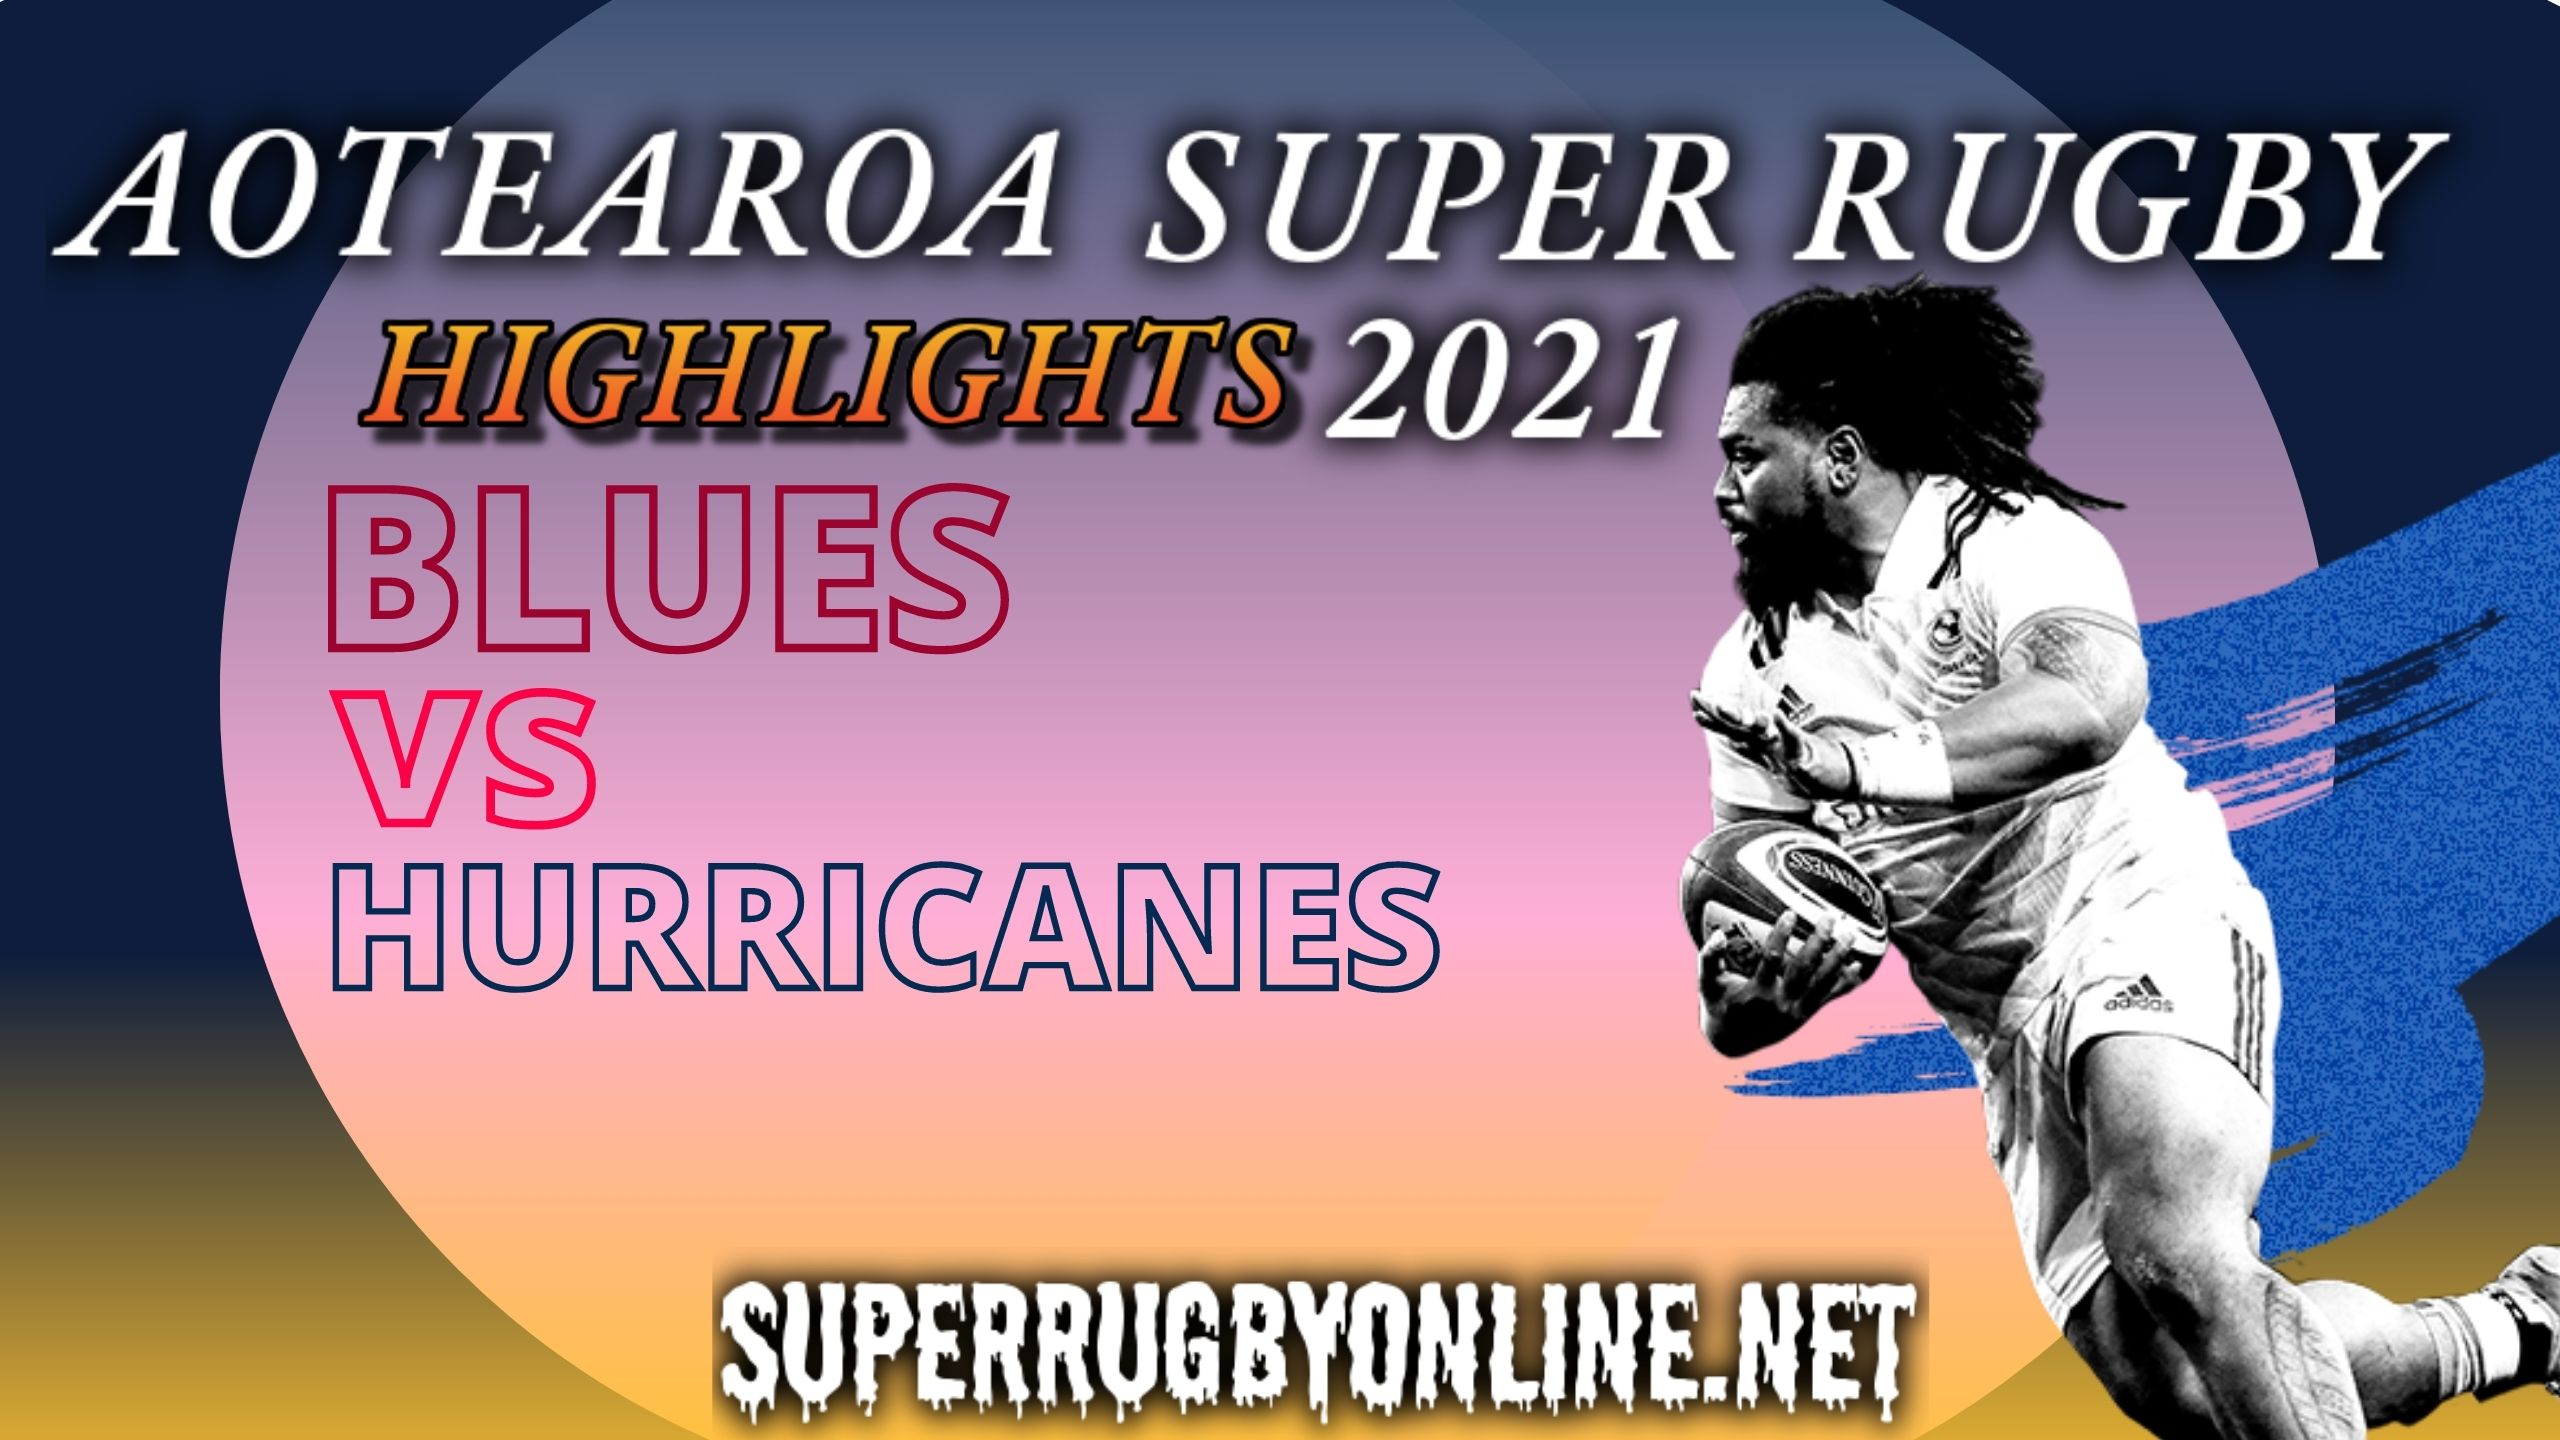 Blues Vs Hurricanes Highlights 2021 Super Rugby